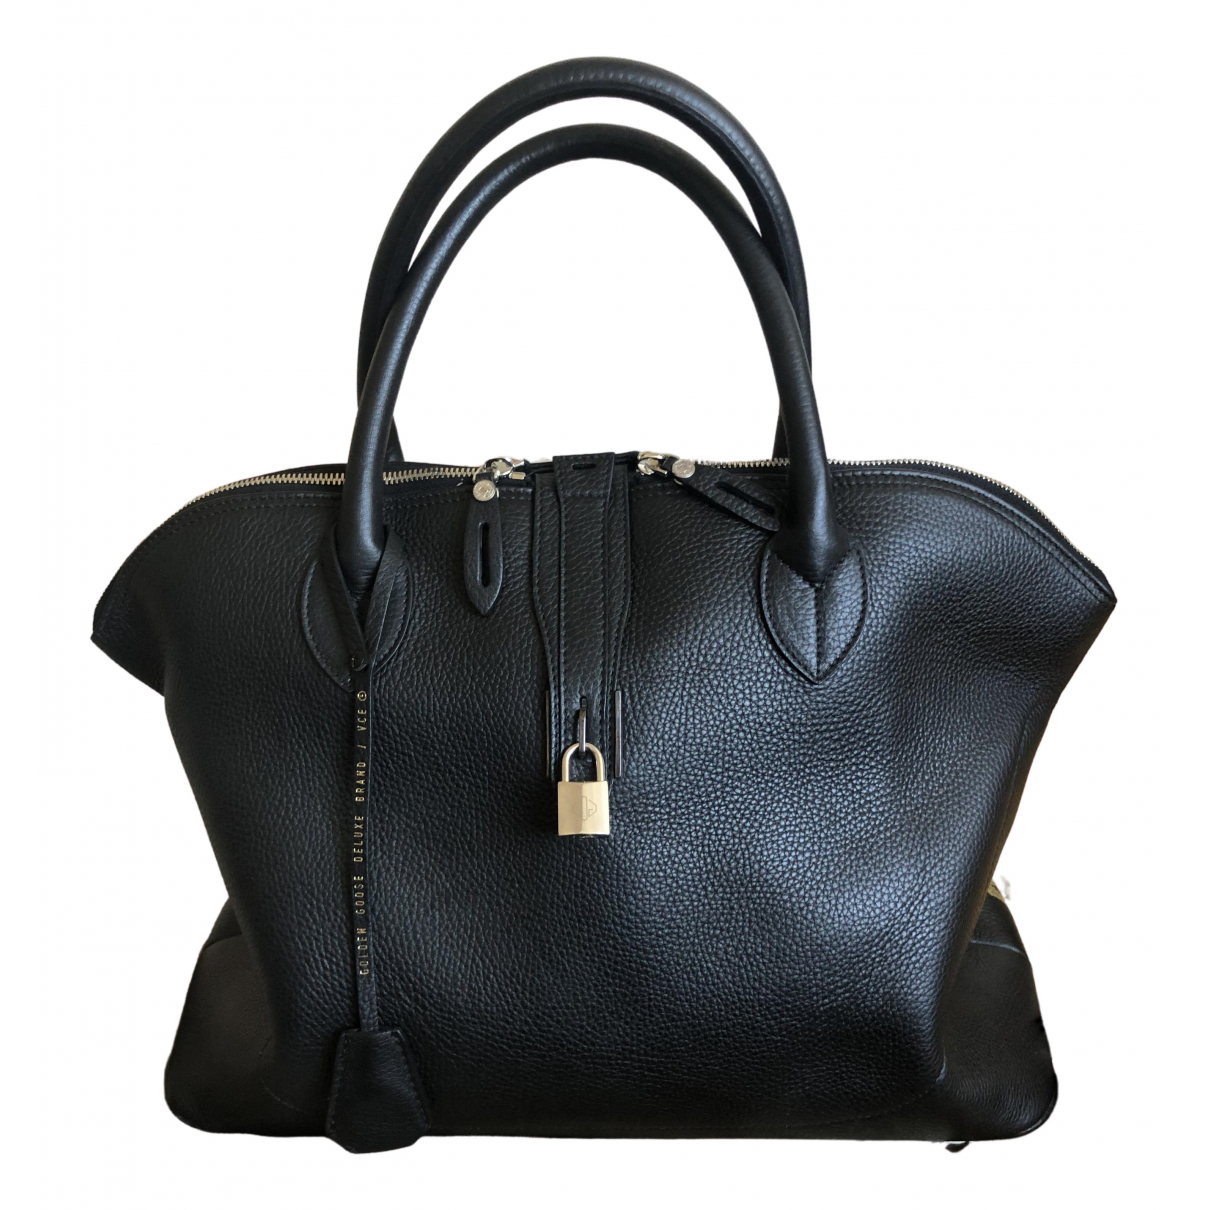 Golden Goose \N Black Leather handbag for Women \N